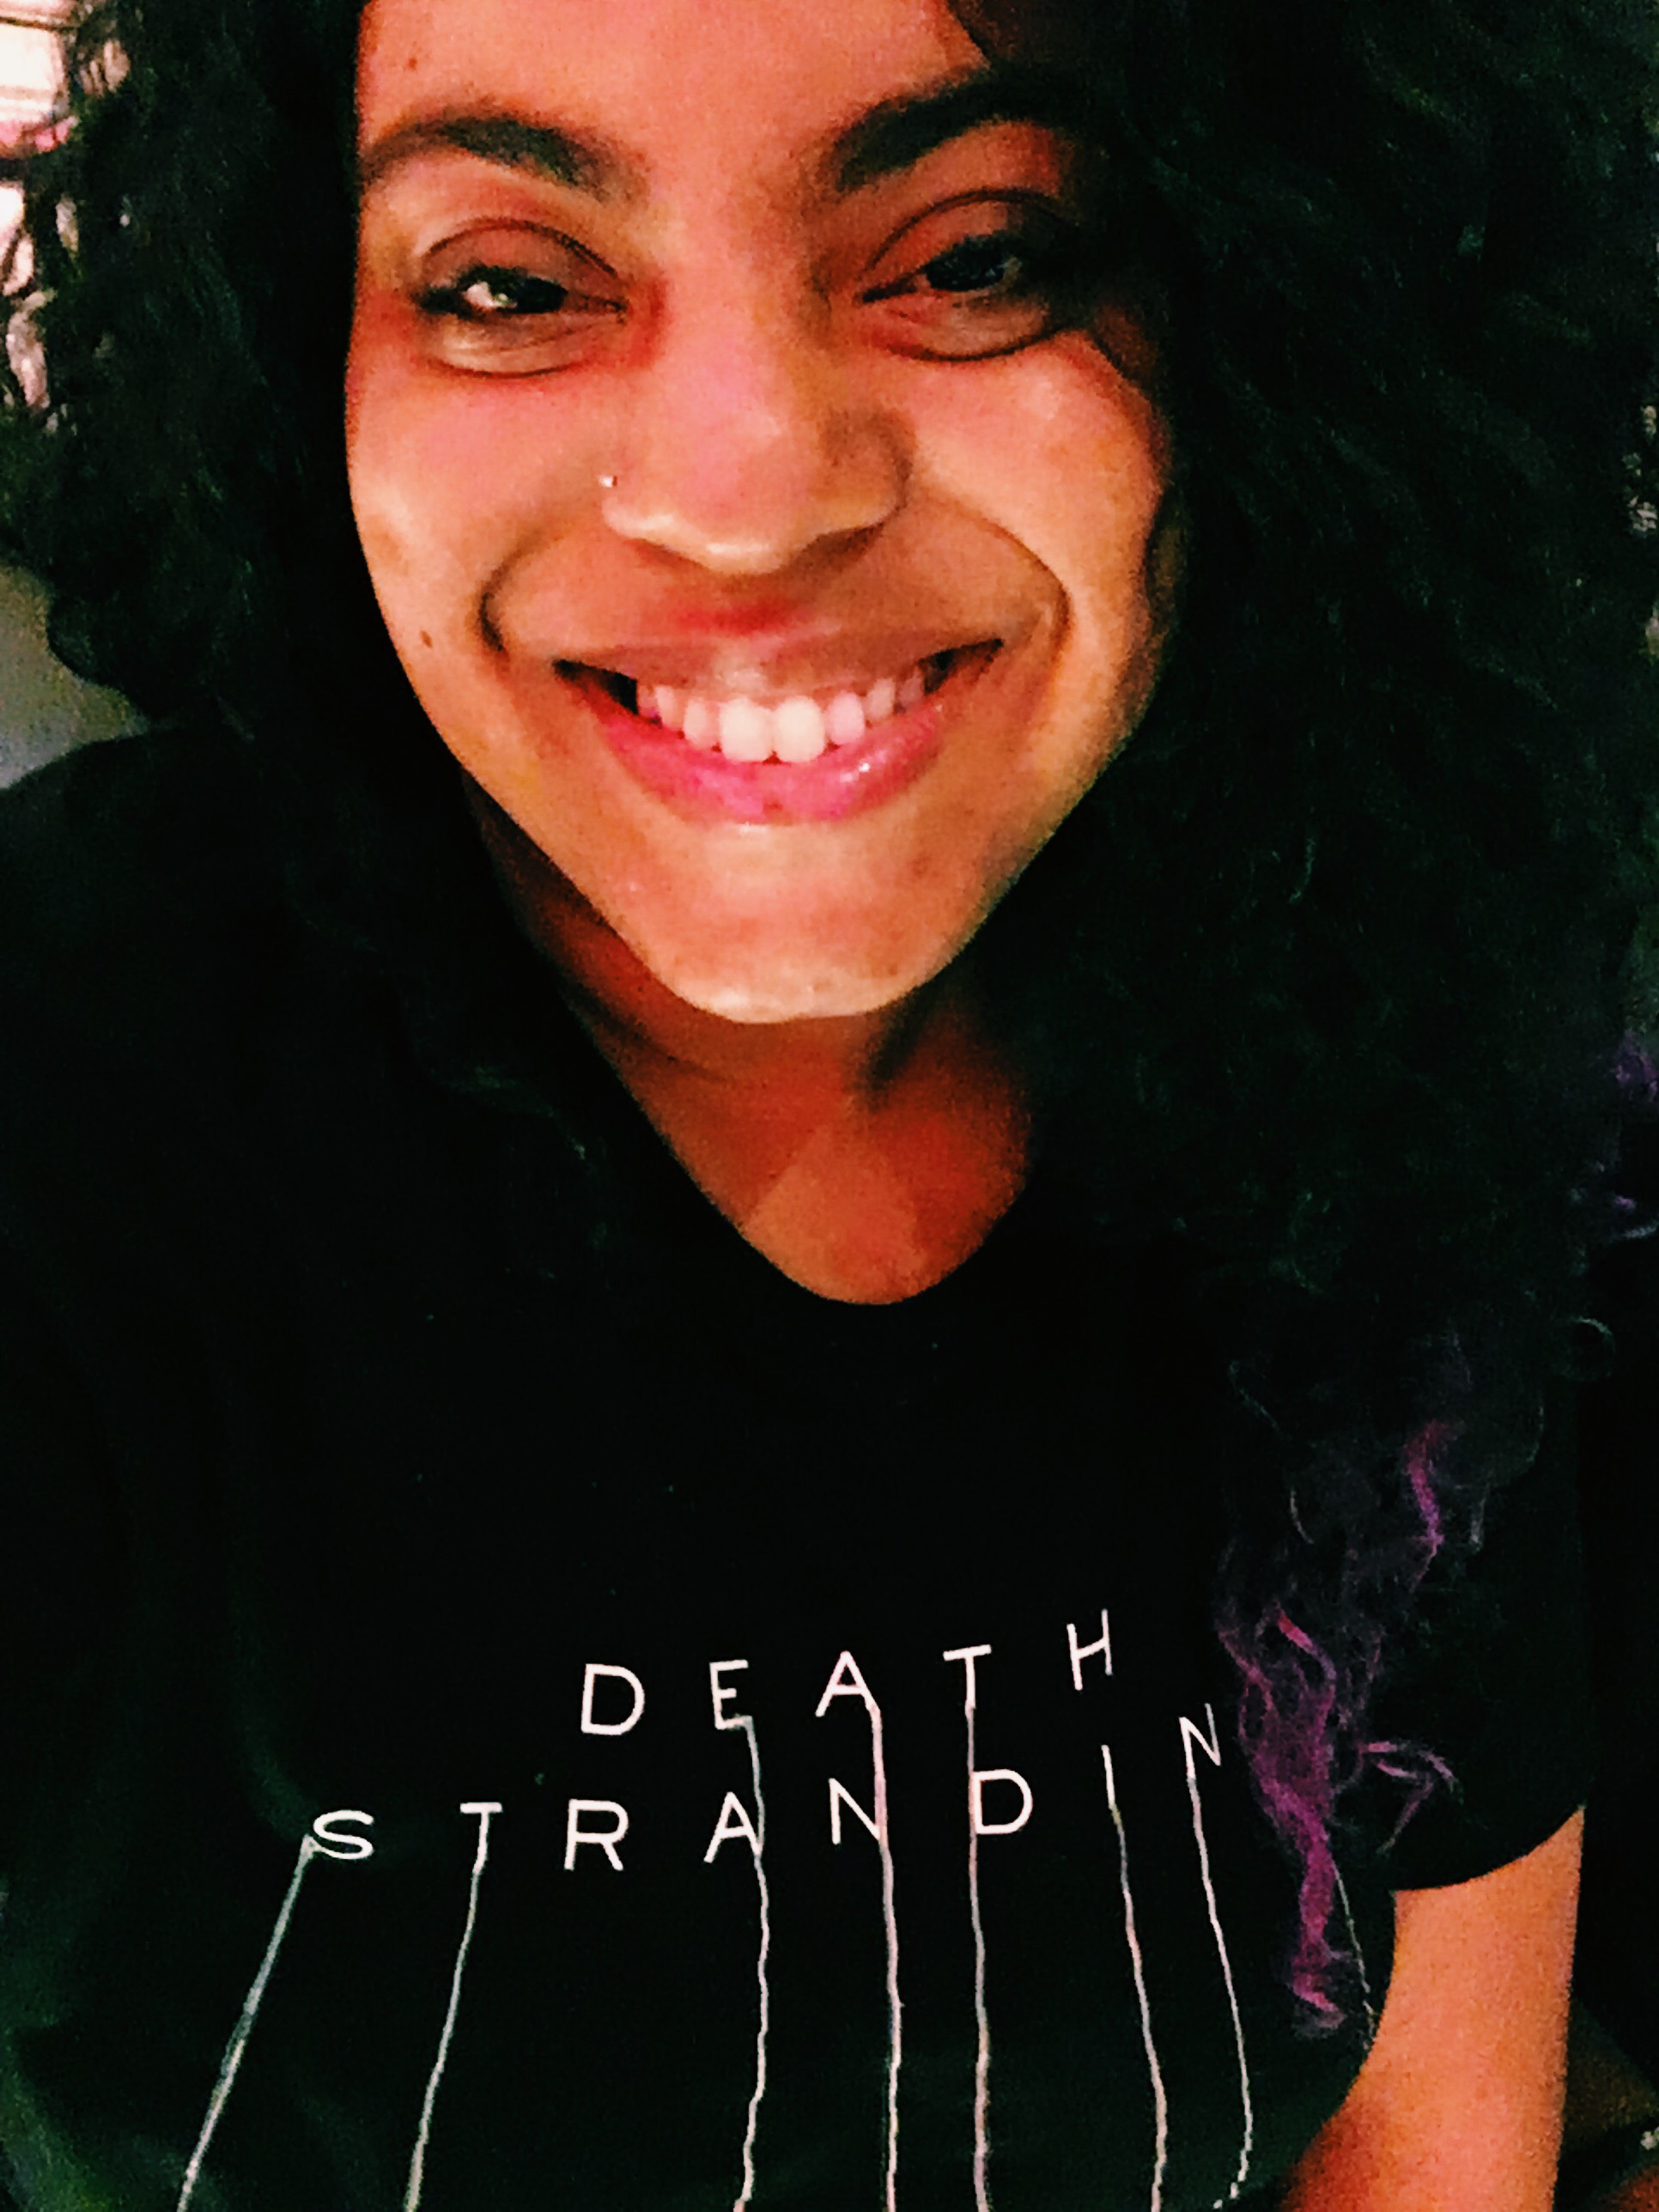 All smiles in a Death Stranding tee.